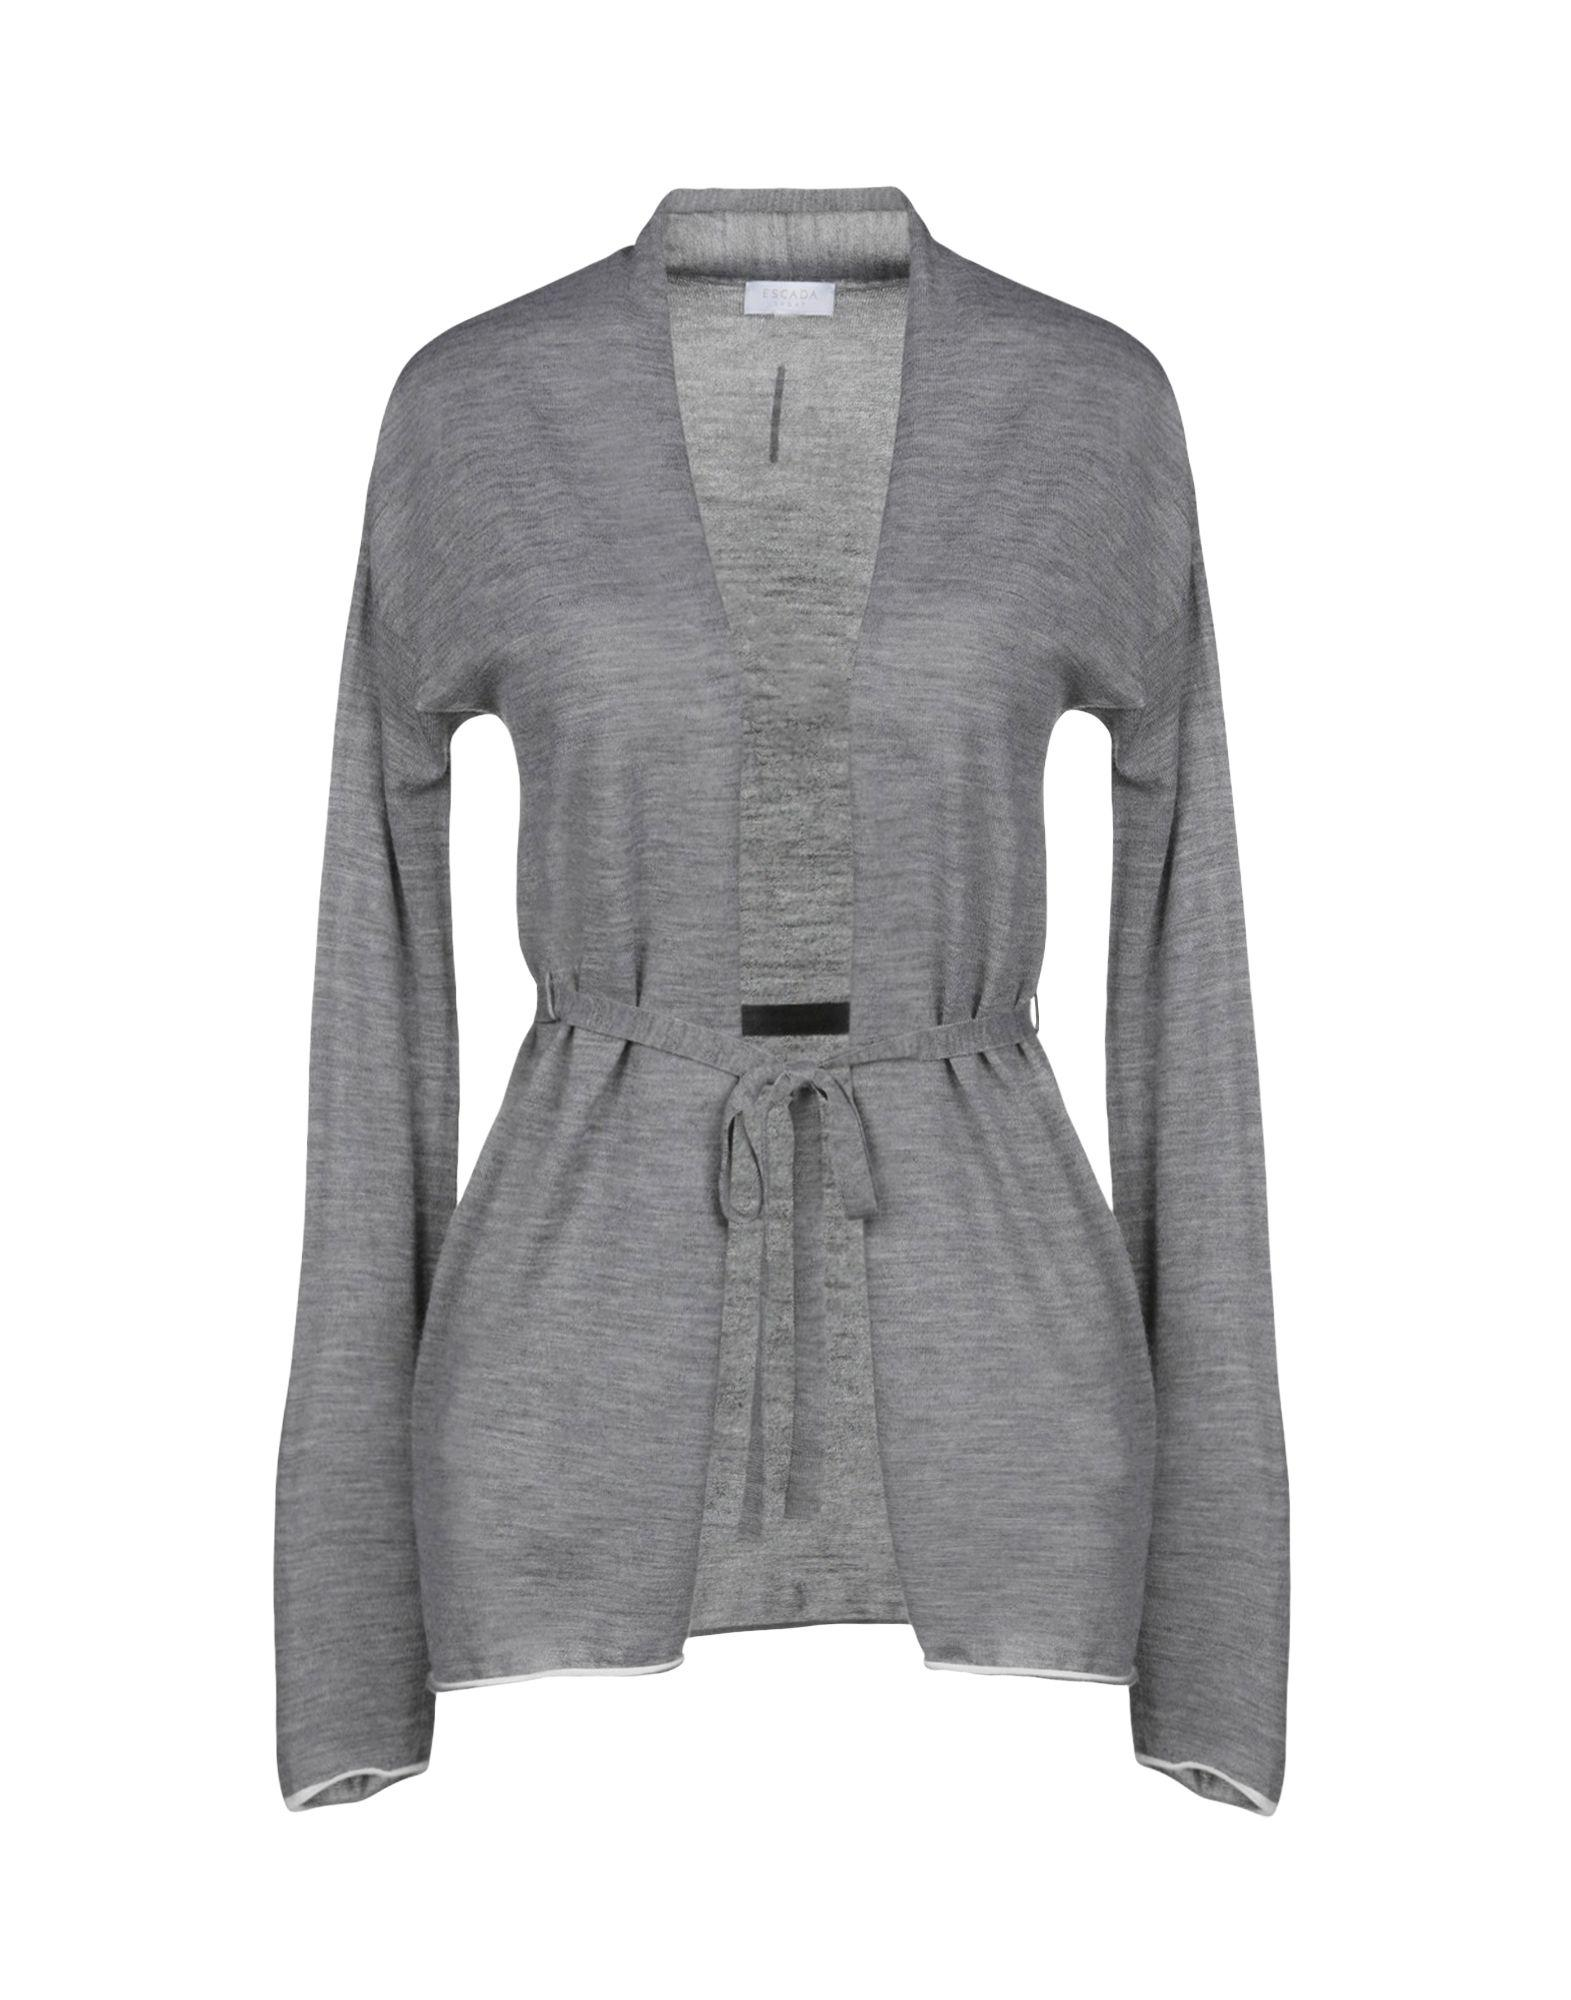 fd9f85b407 Lyst - Escada Cardigan in Gray